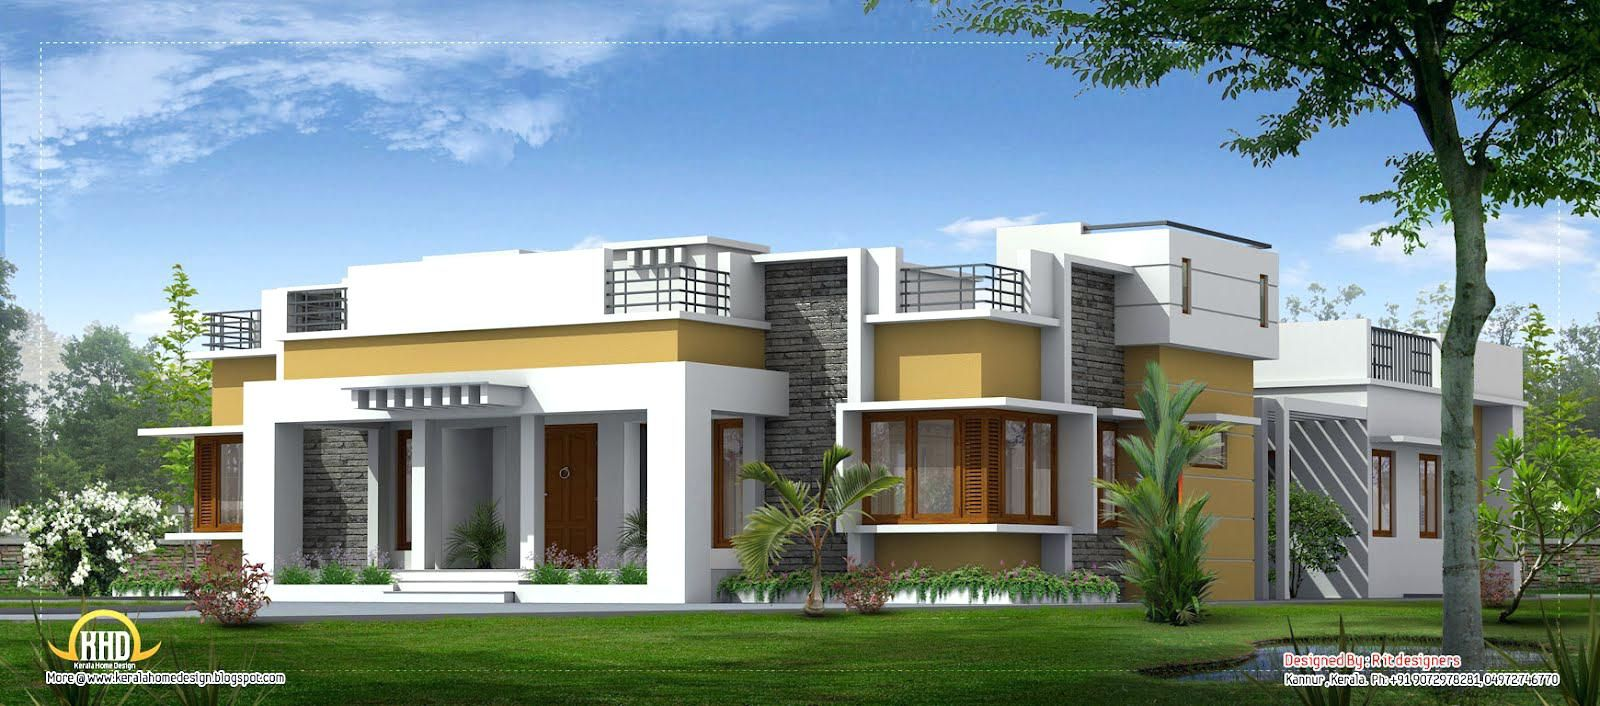 Single storey contemporary house designs in kerala